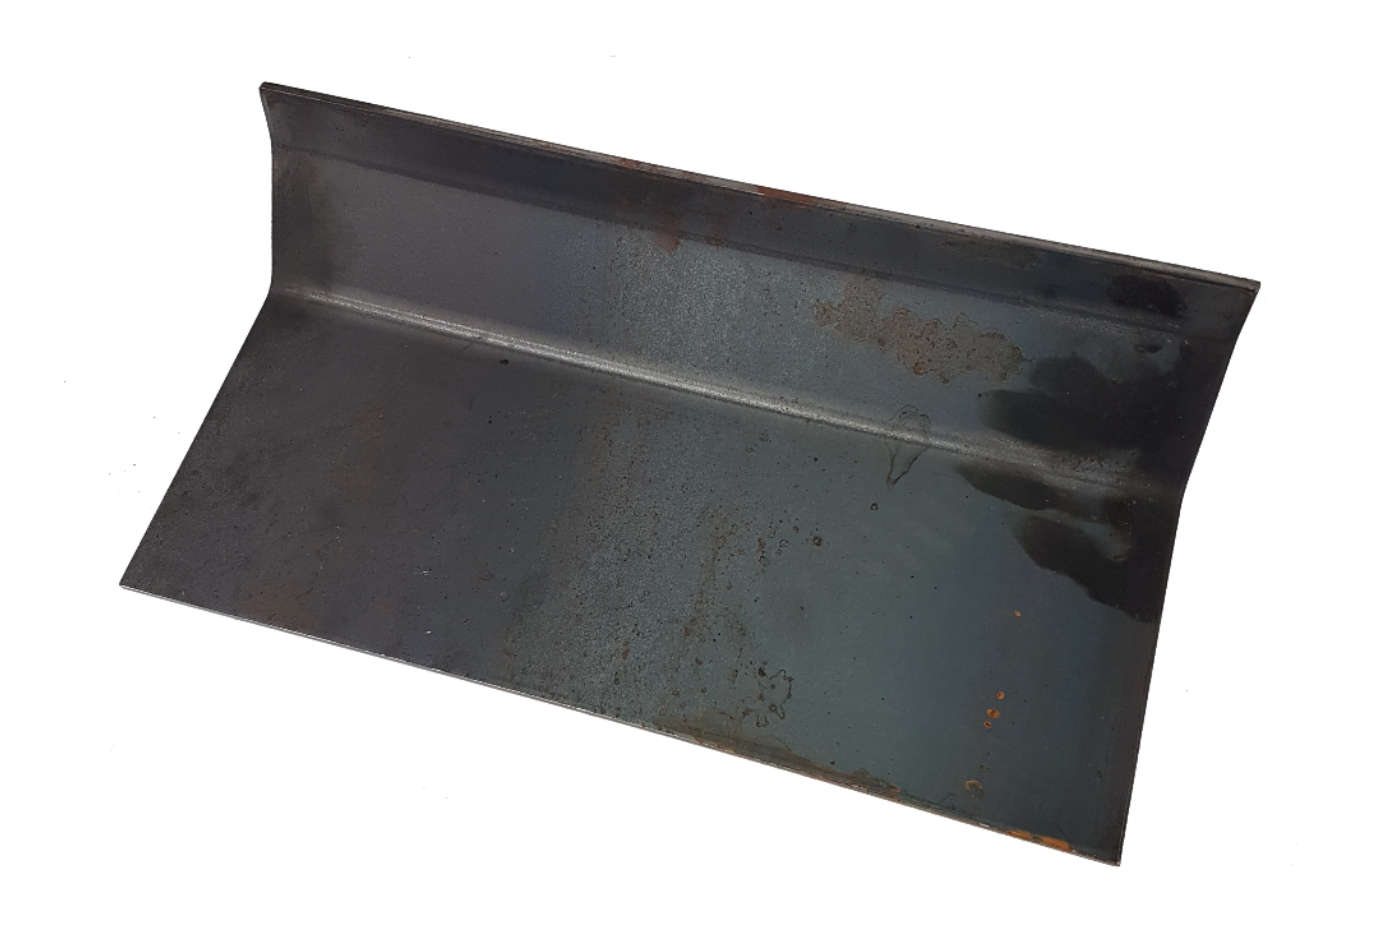 A replacement Baffle suitable for Stovax View 5 Midline MK2 stoves.